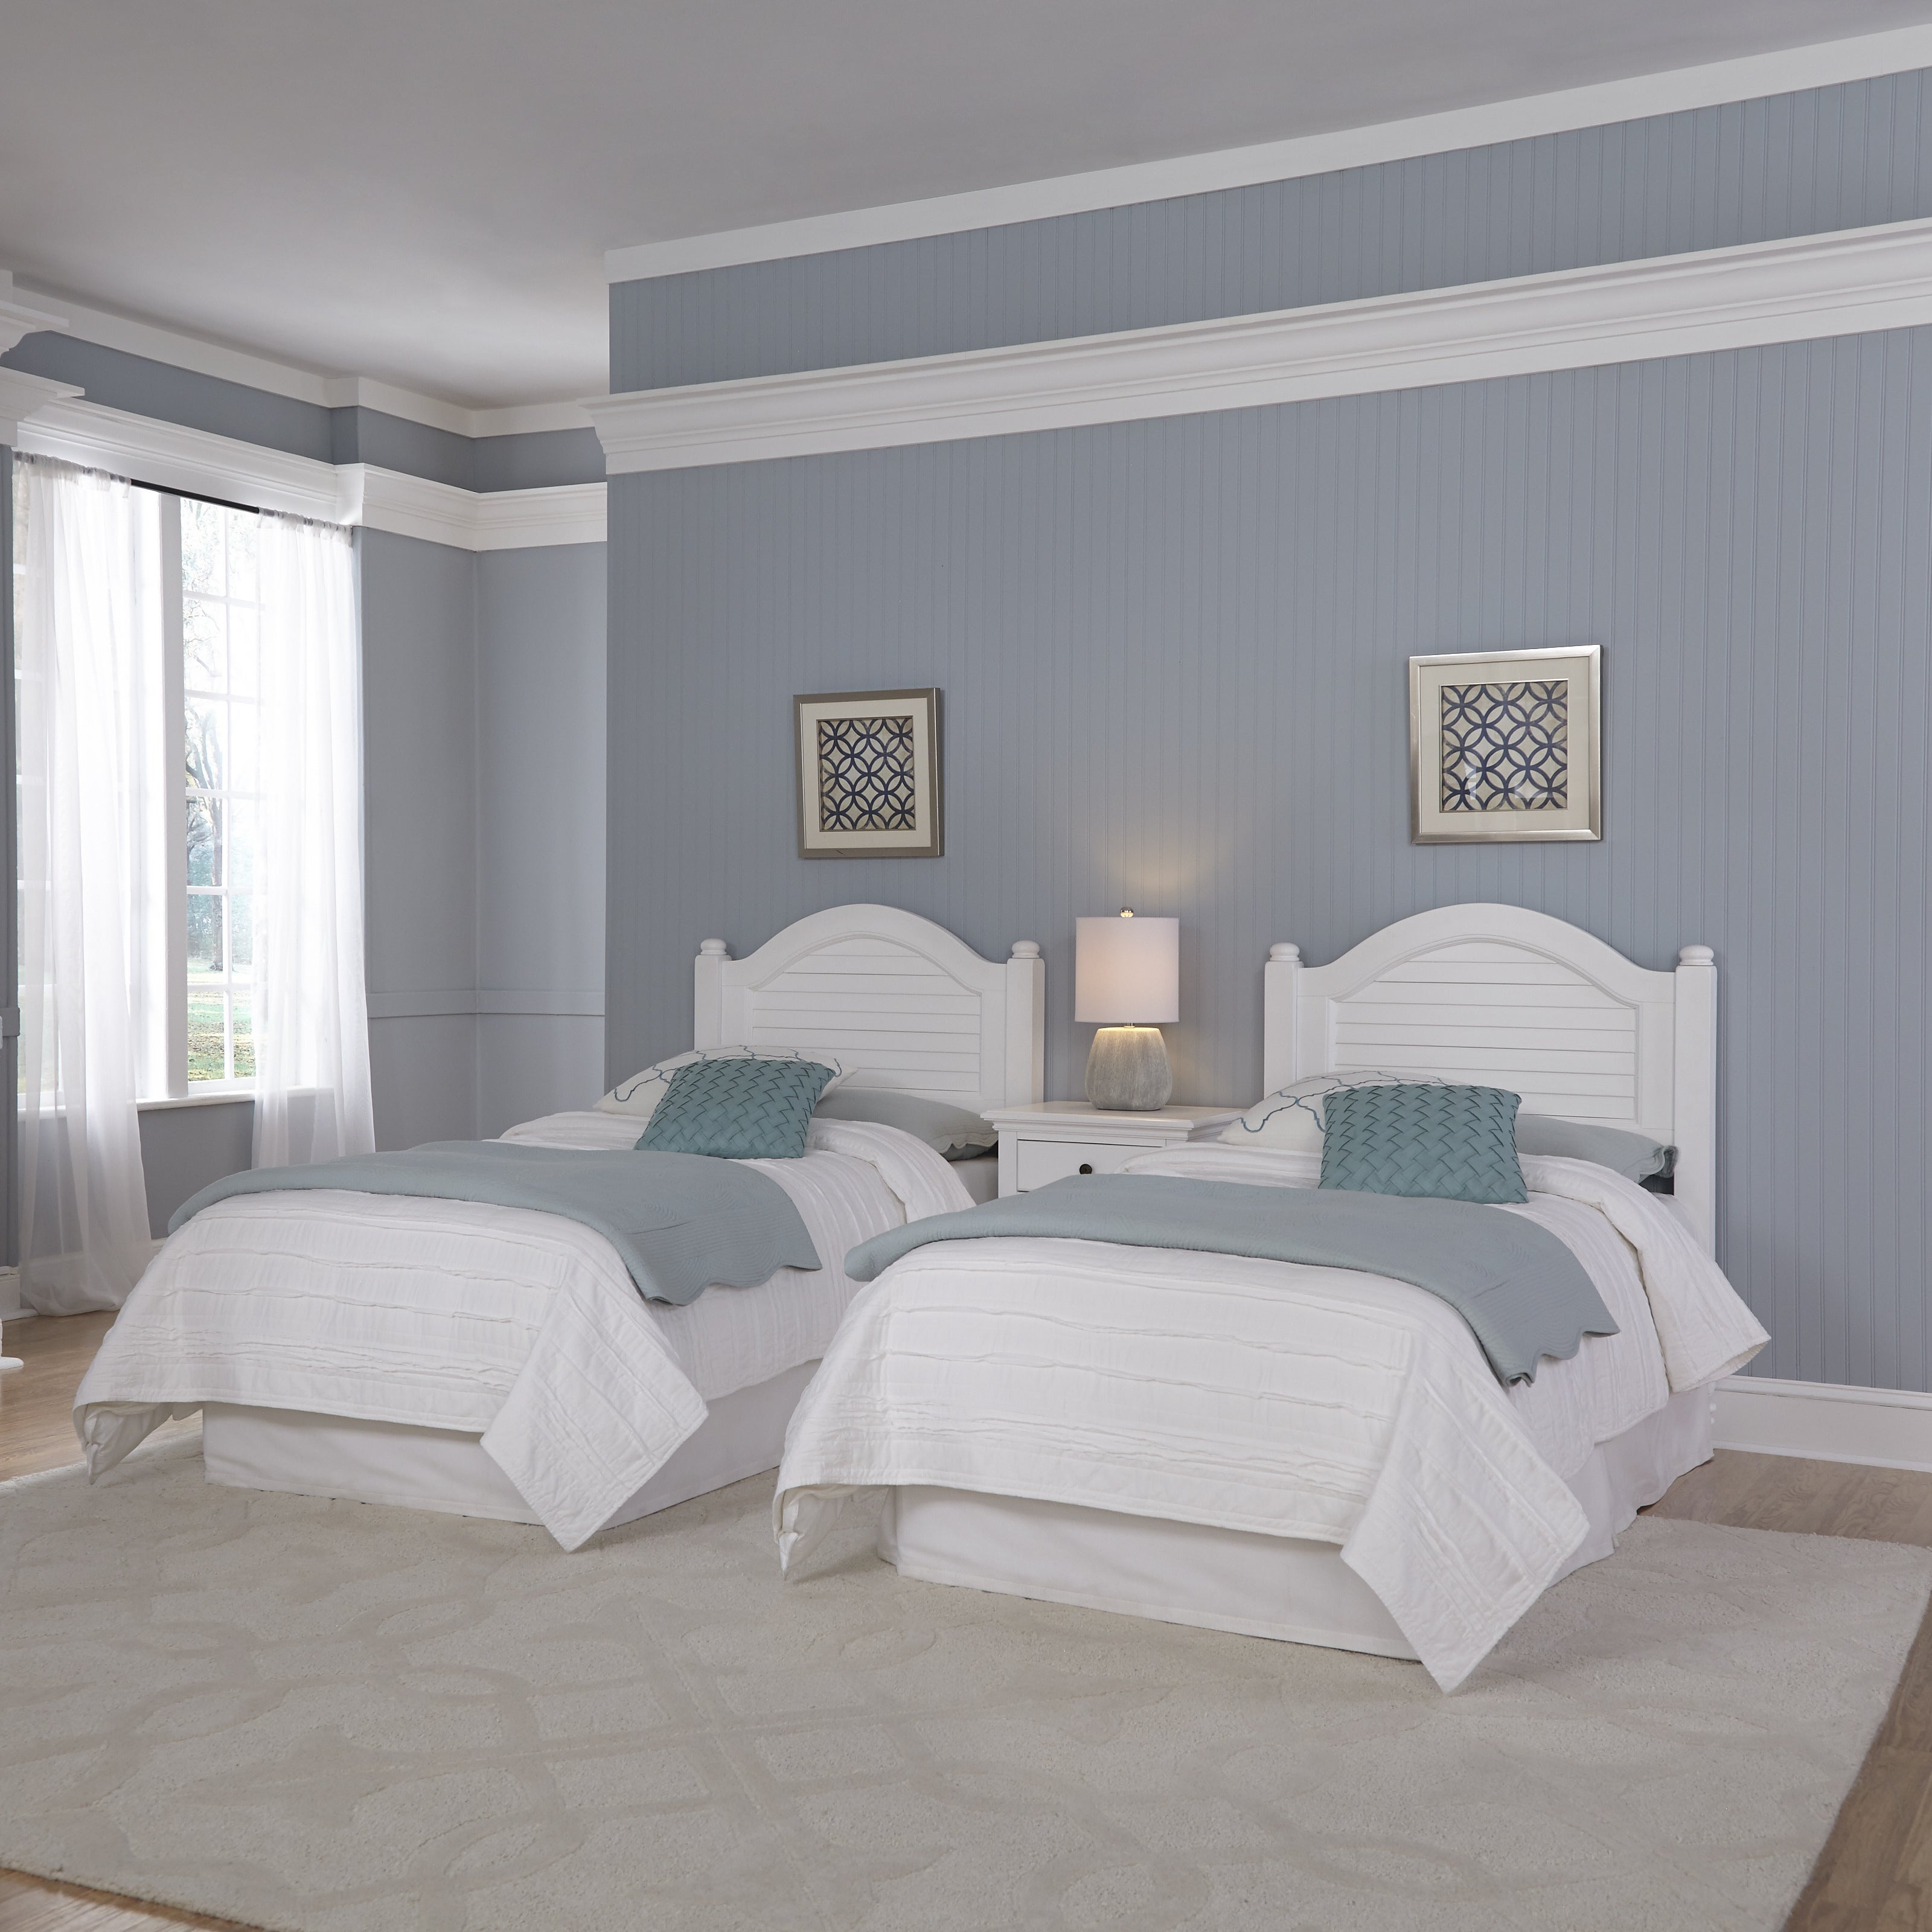 Image of: Shop Black Friday Deals On Bermuda Two Twin Headboards And Night Stand By Home Styles On Sale Overstock 10539122 Brushed White